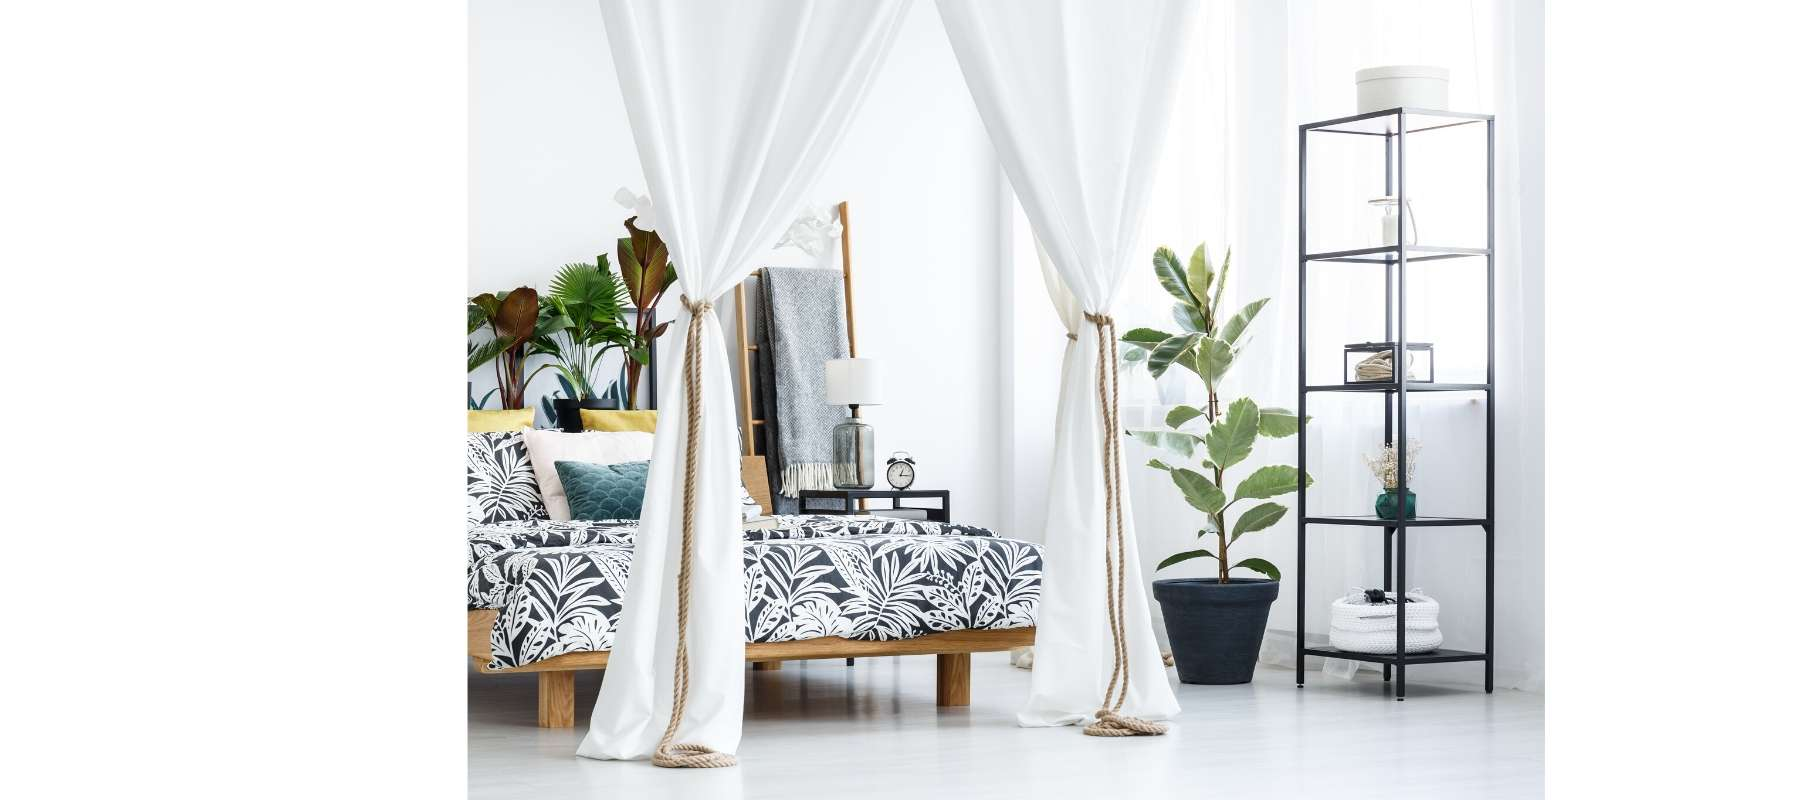 White four poster bed with green plants and industrial bookcase